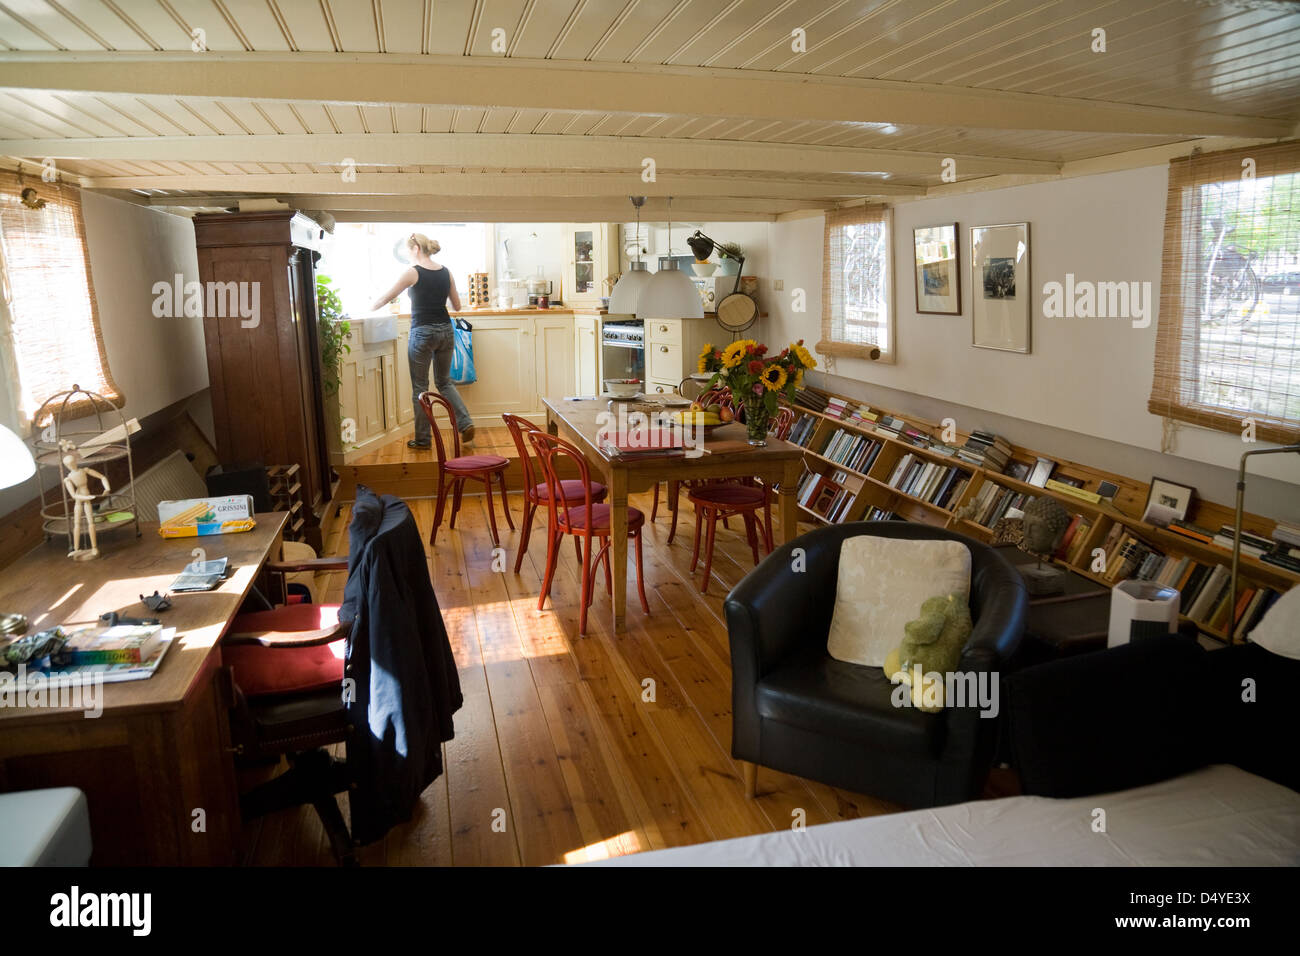 Captivating Amsterdam, Netherlands, The Interior Of A Houseboat   Stock Image Part 21